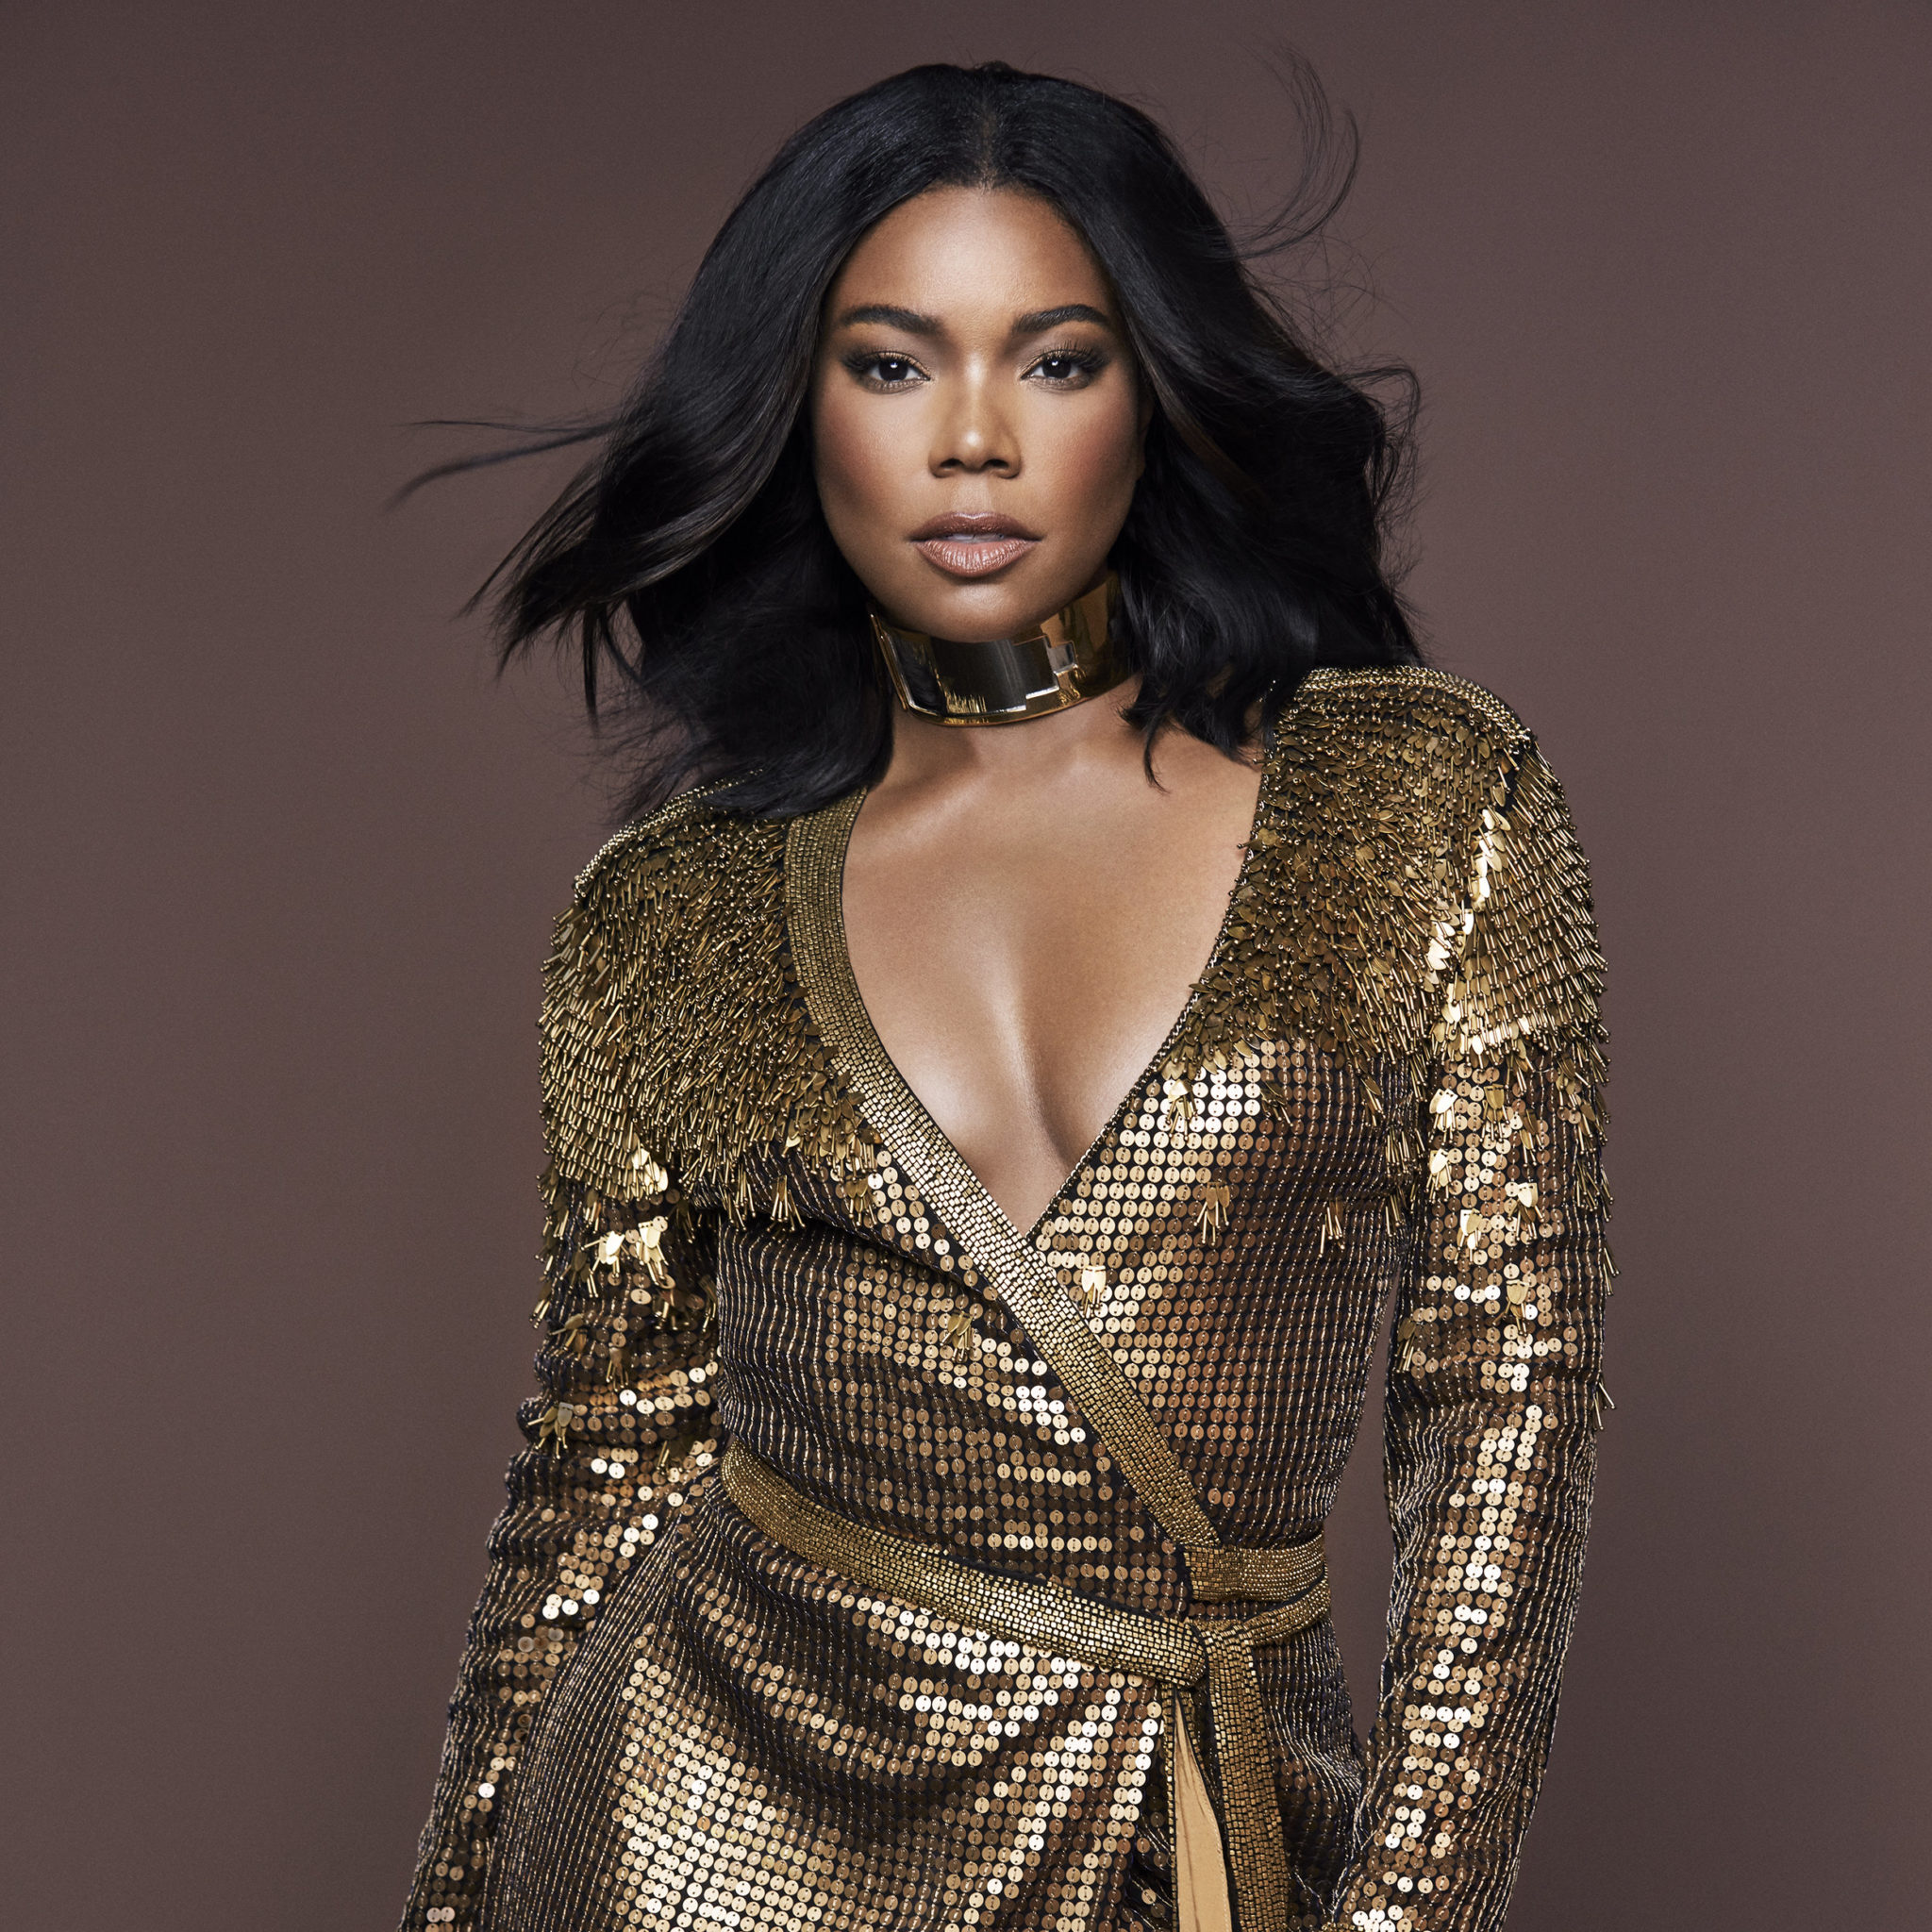 gabrielle union for 39 essence 39 magazine talking with tami. Black Bedroom Furniture Sets. Home Design Ideas